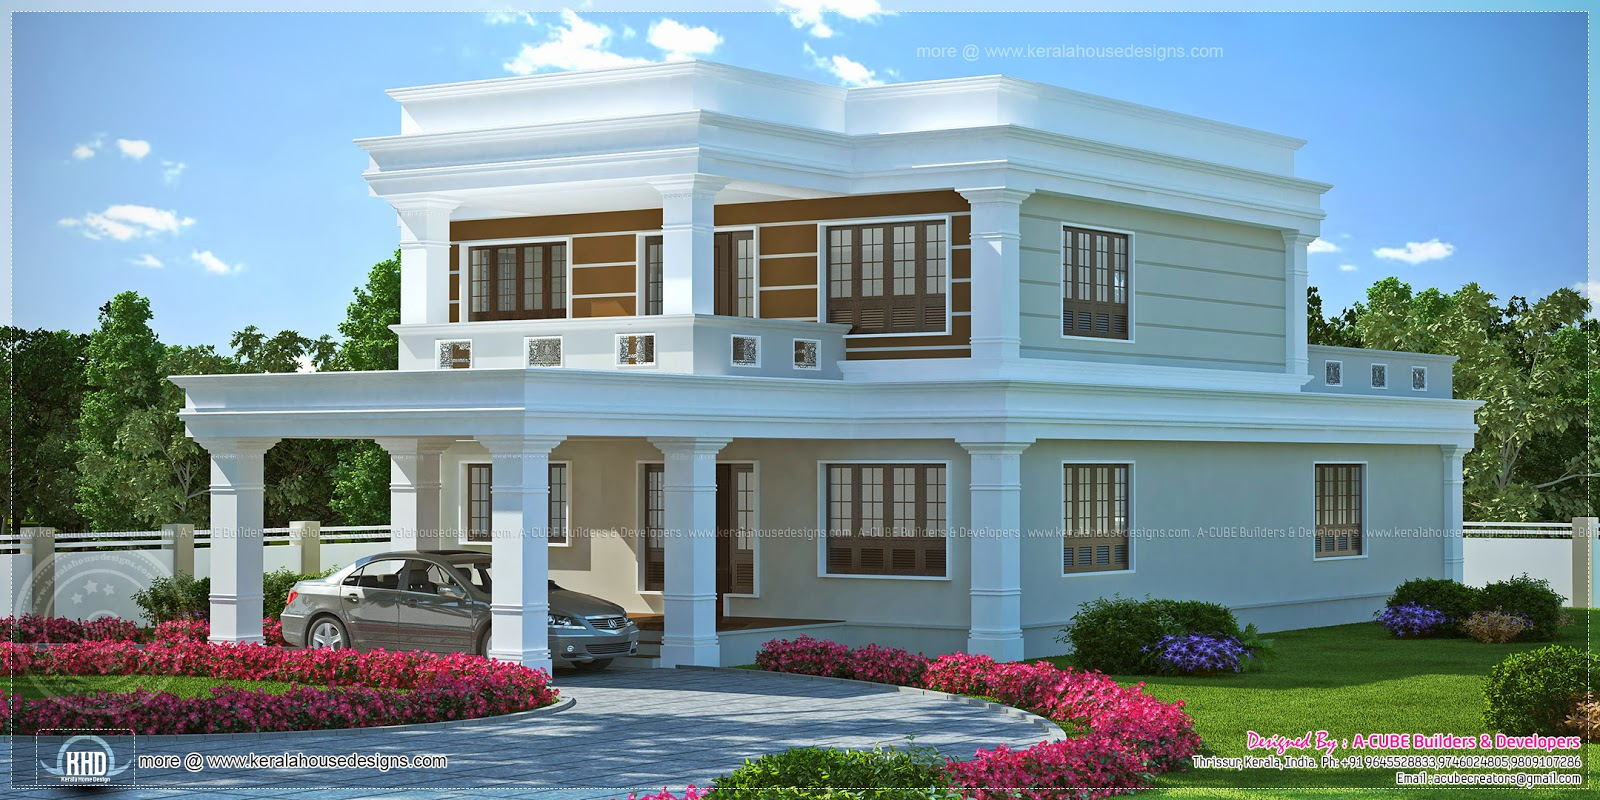 Flat roof 4 bedroom luxury home kerala home design and floor plans - Flat roof home designs ...